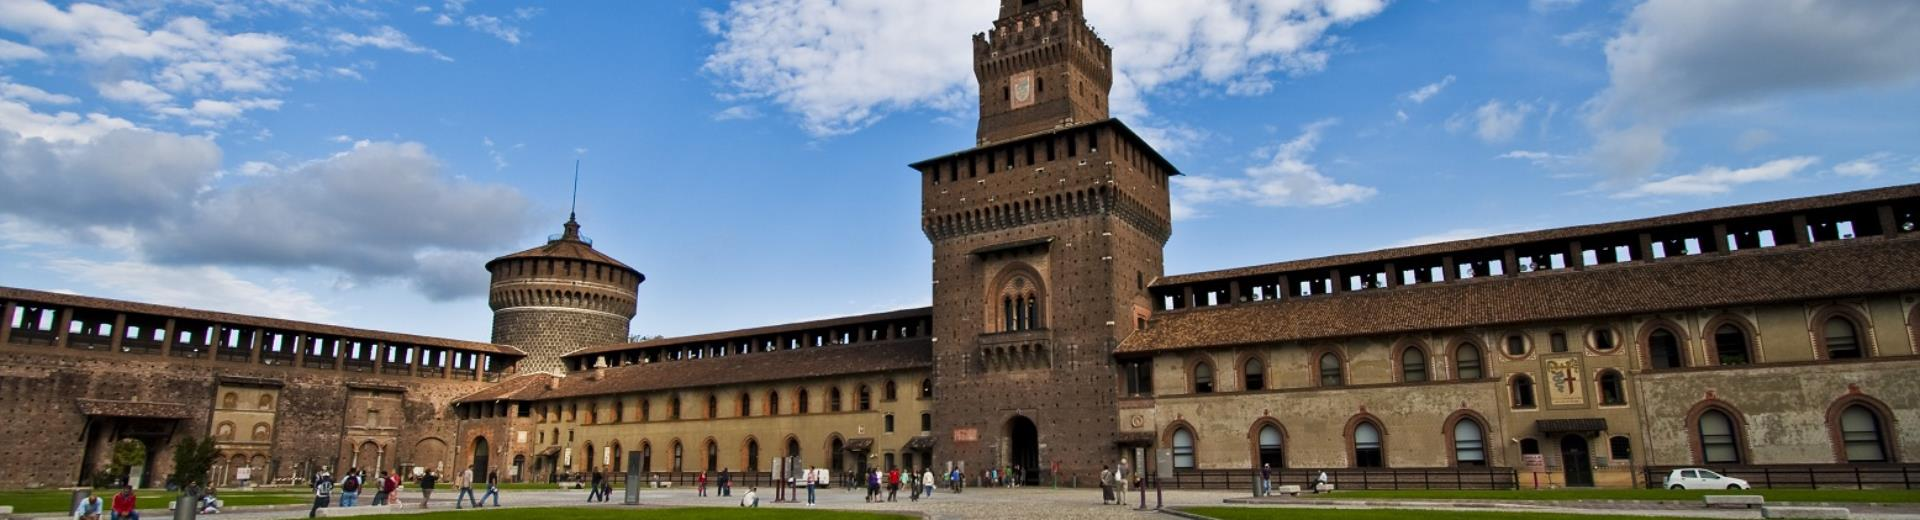 Discover Milan and its beauties: the Castello Sforzesco easy to reach from Best Western Hotel Astoria